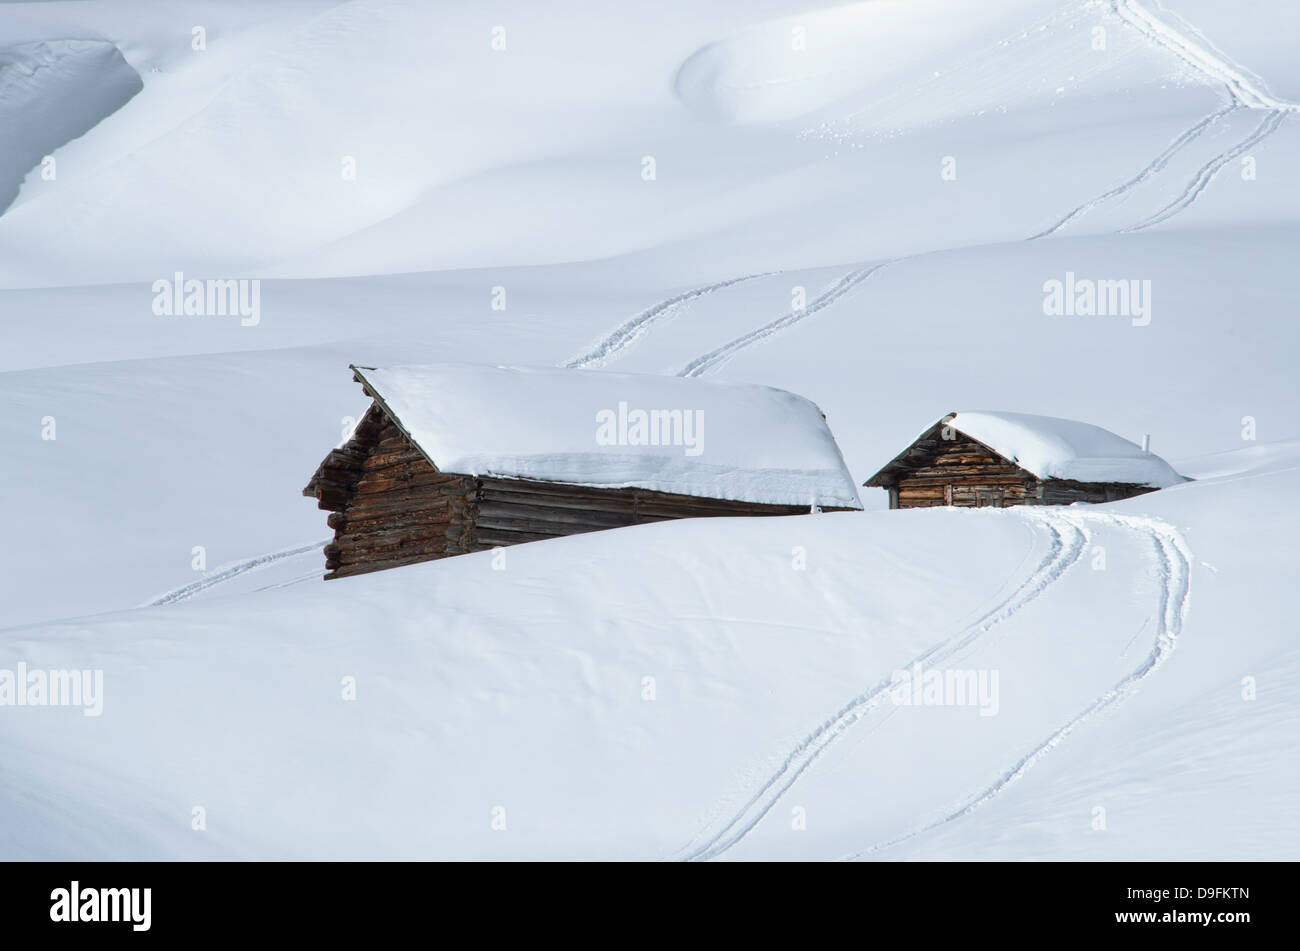 Two old wooden barns surrounded by deep snow and ski tracks in the Dolomites, South Tyrol, Italy - Stock Image